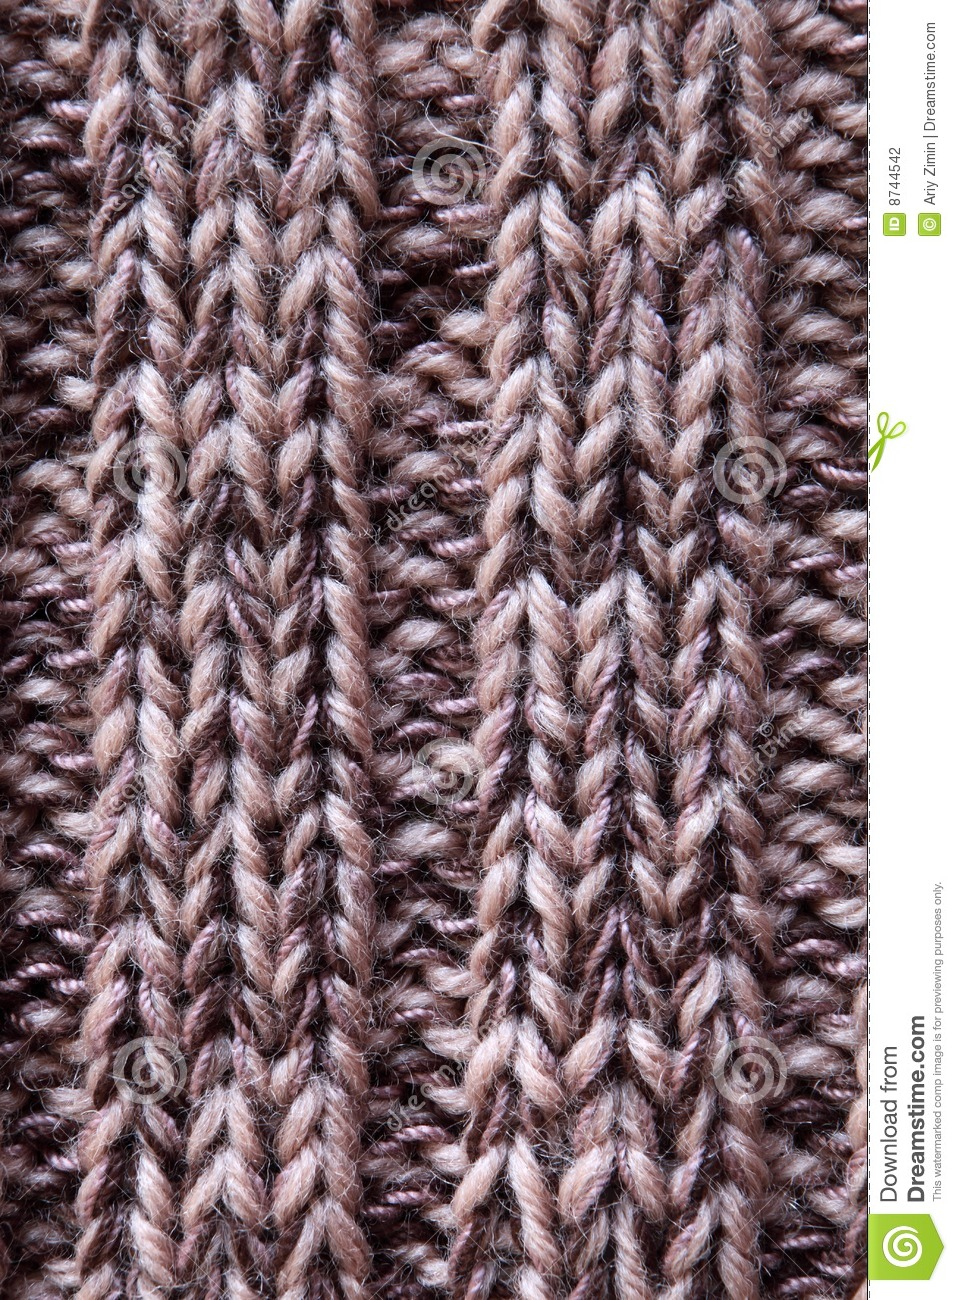 Colourful Knitting Patterns : Knitted Pattern Stock Photography - Image: 8744542